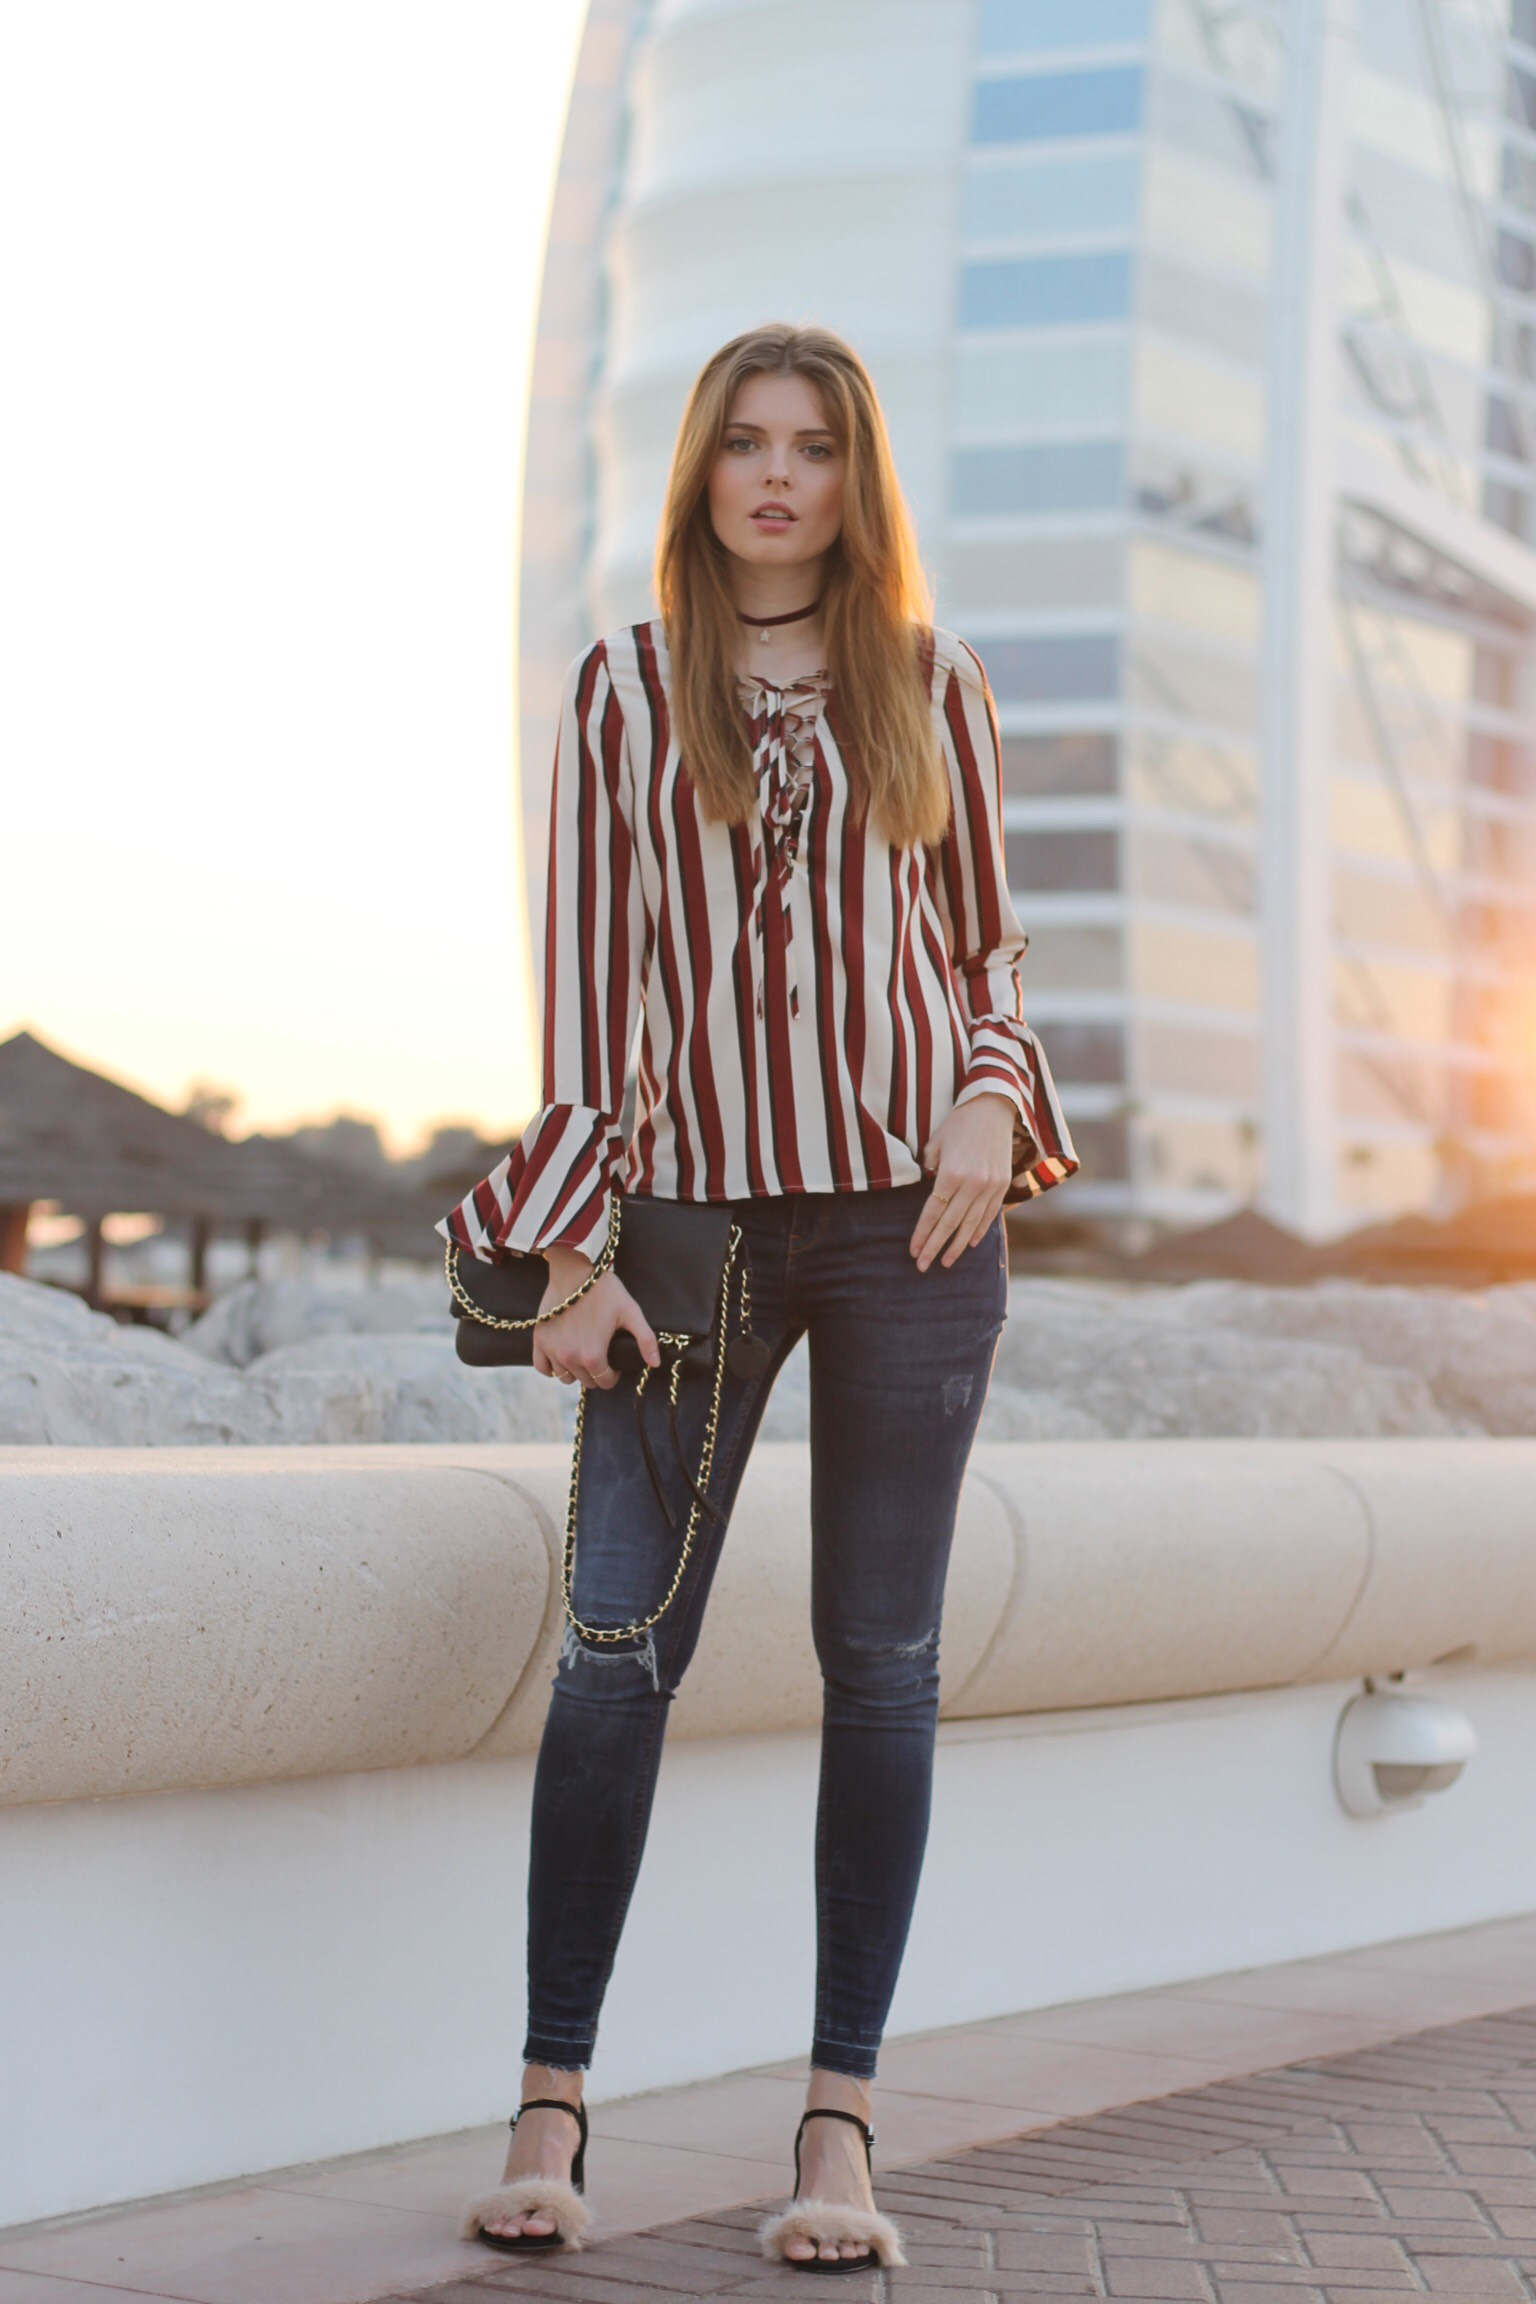 file6 - STRIPED BLOUSE OUTFIT IN DUBAI